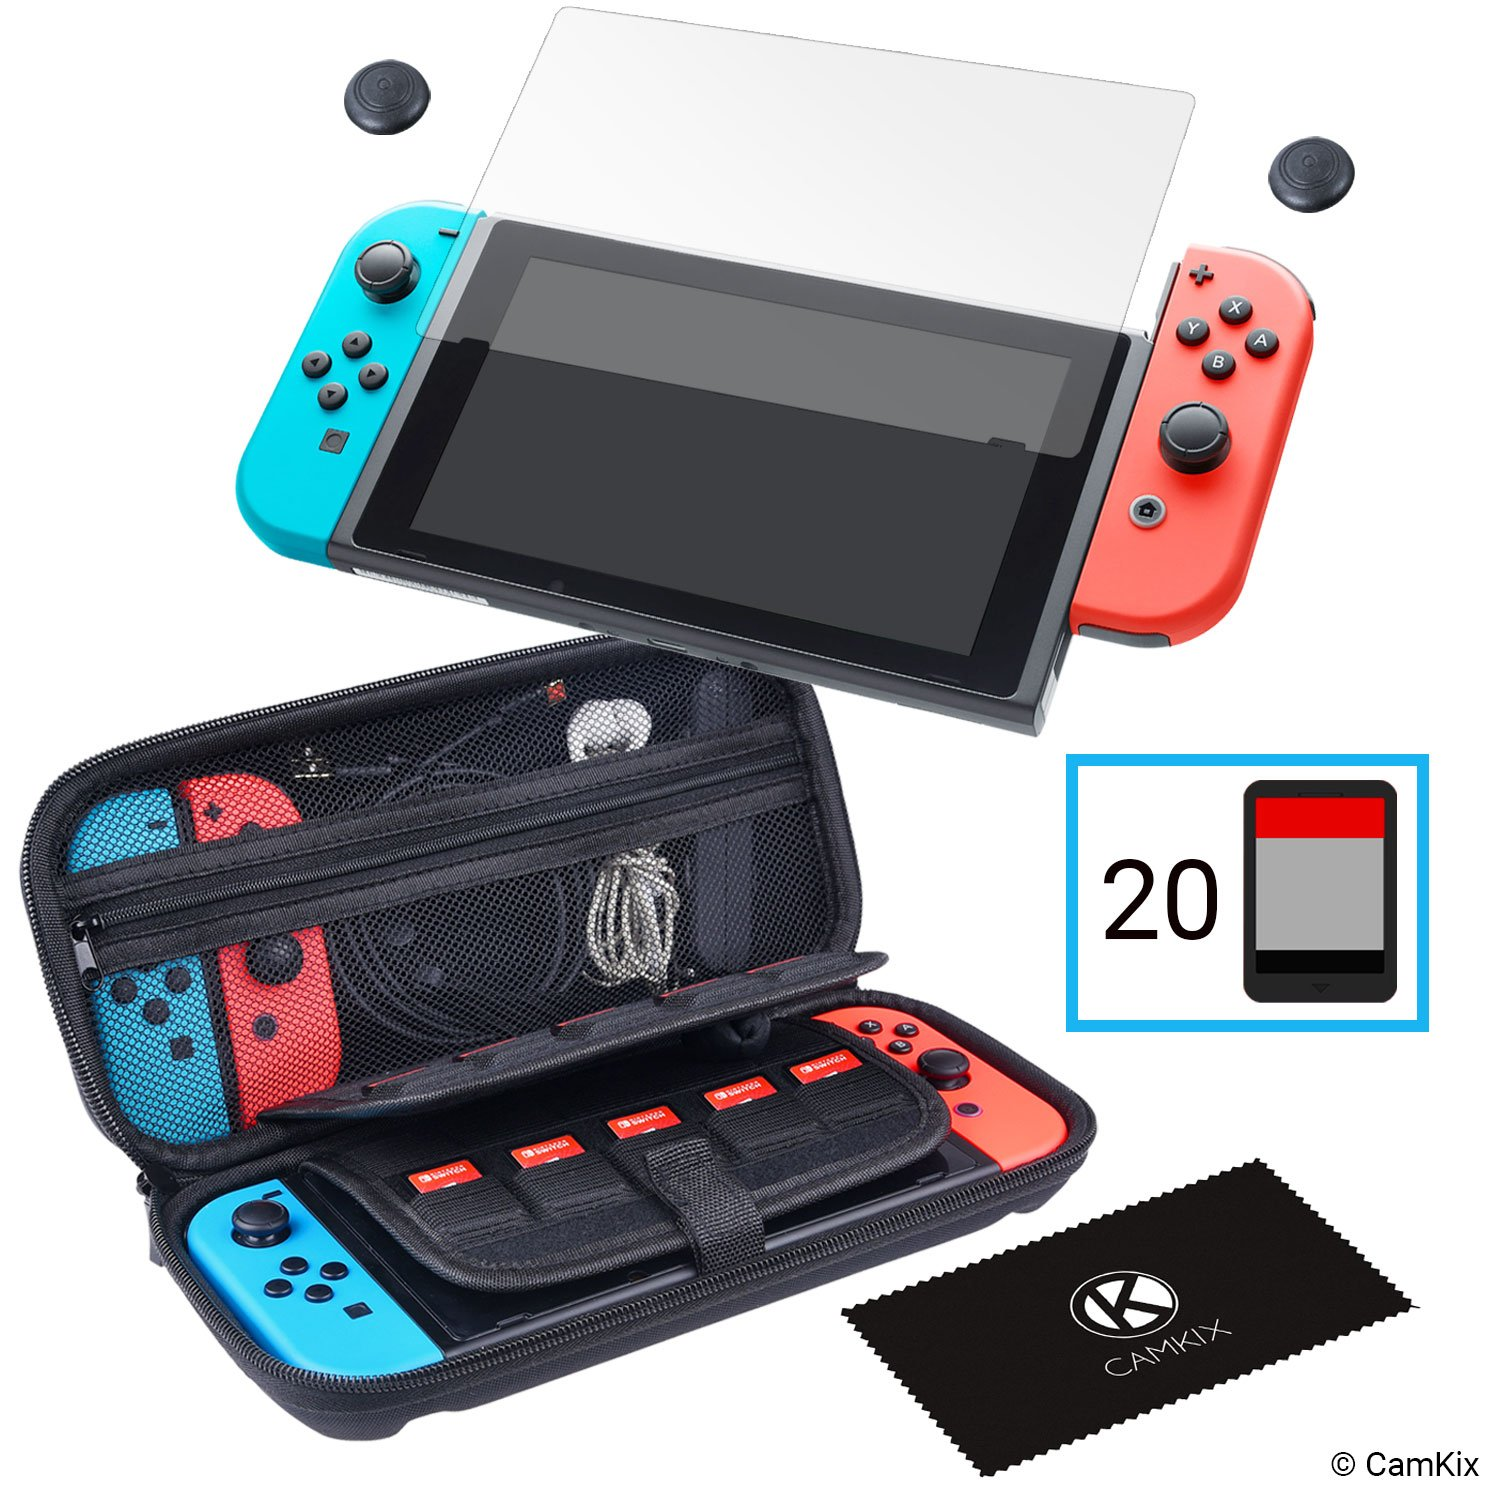 CamKix Storage and Protection Kit Compatible with Nintendo Switch: Hard Shell Nylon Case with 20 Game Card Inserts, Tempered Glass Screen Protector, Thumb Grip Covers, Cleaning Cloth